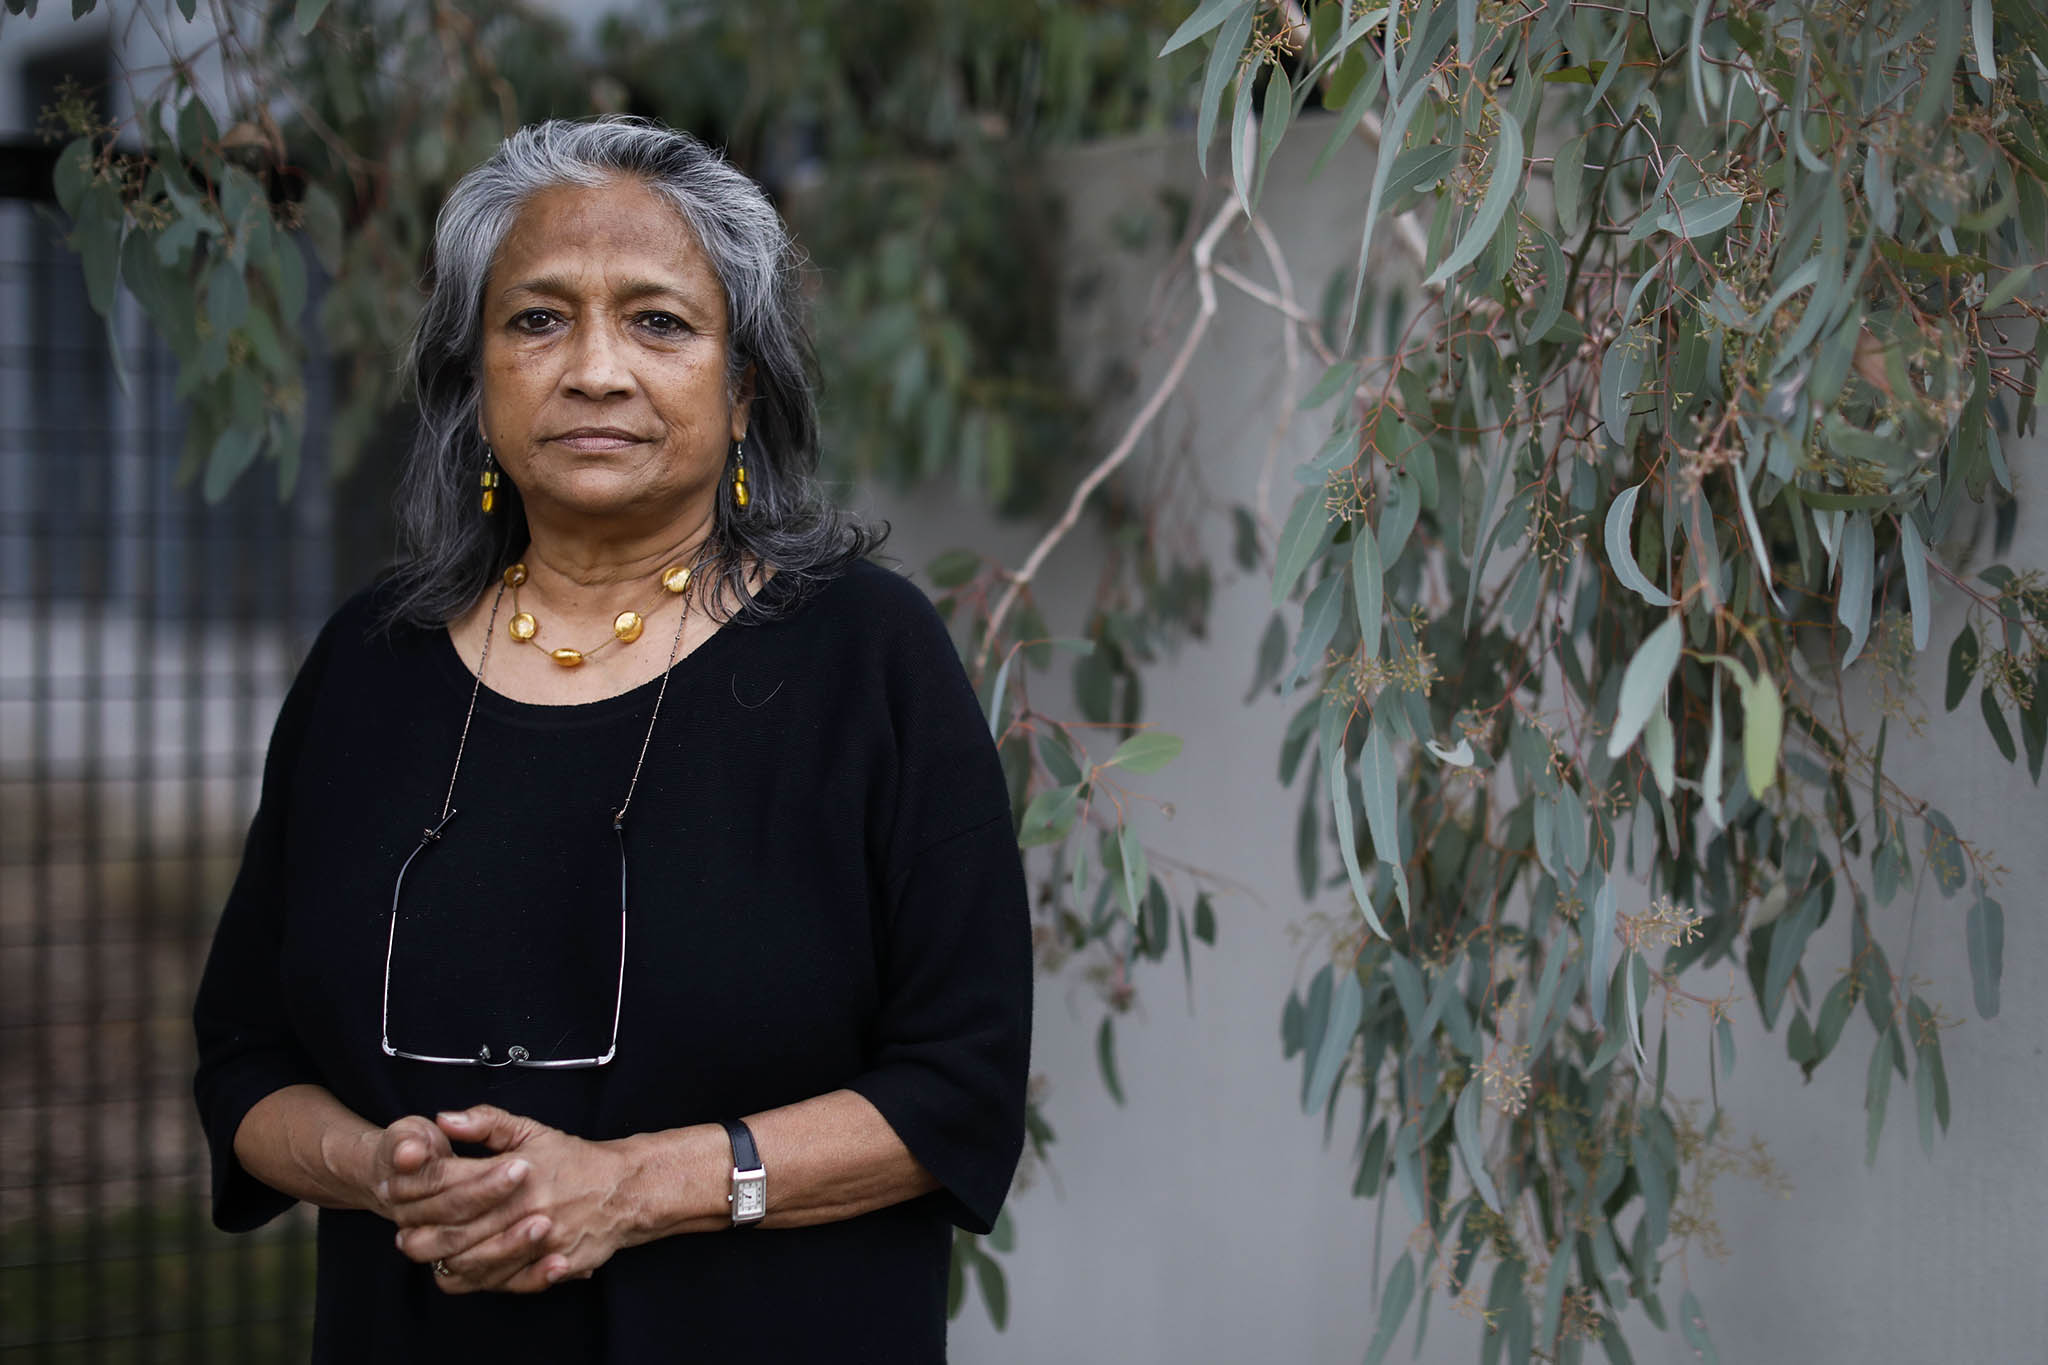 Gender in agriculture: Interview with Professor Naila Kabeer